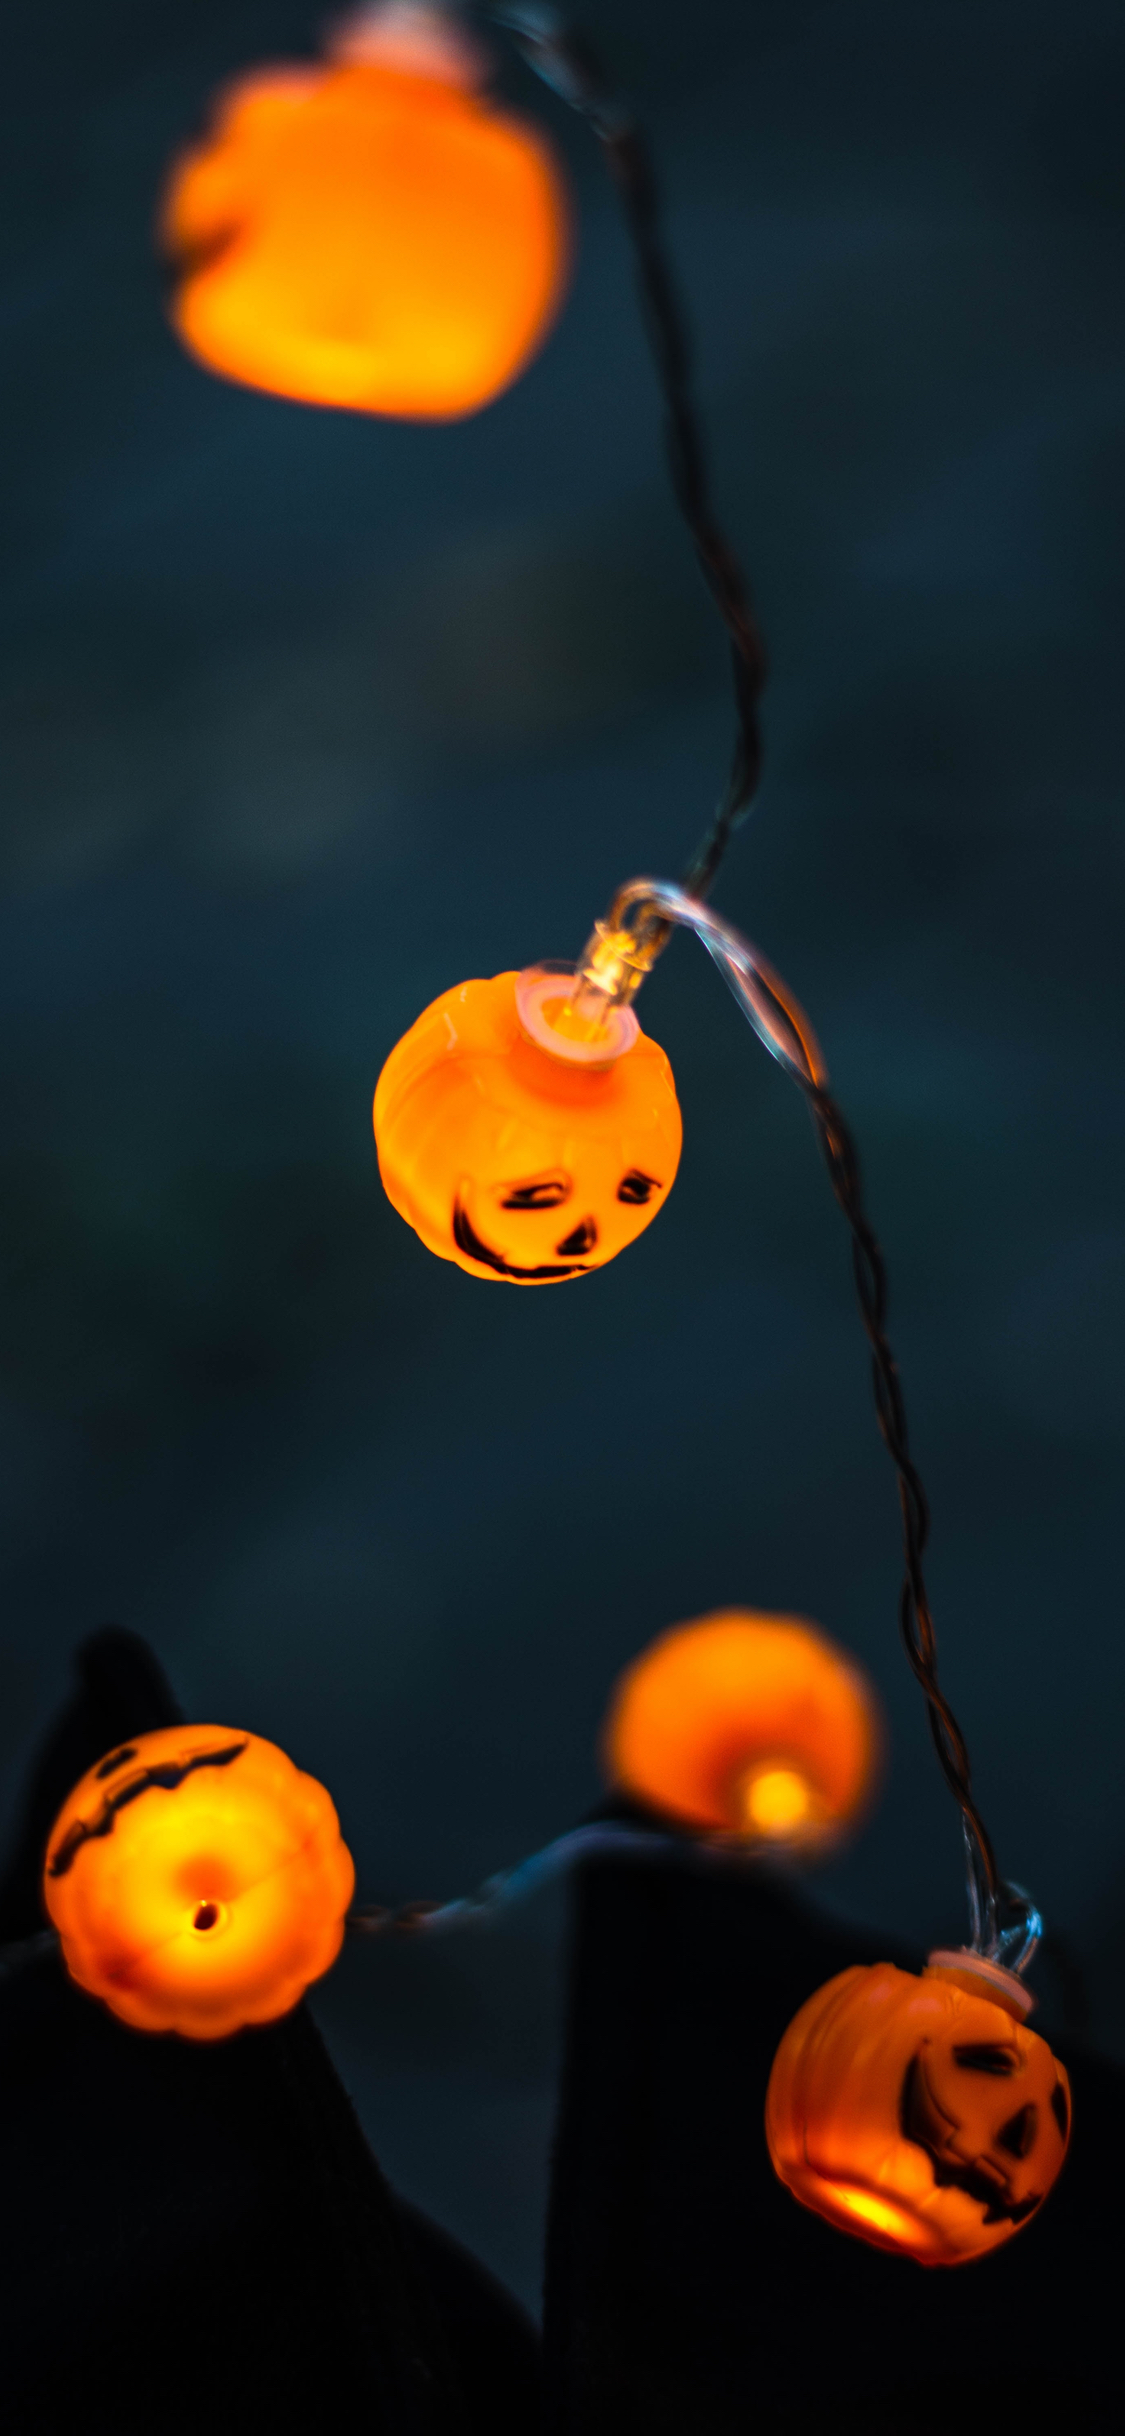 Halloween lights iphone wallpaper kristina tamasauskaite